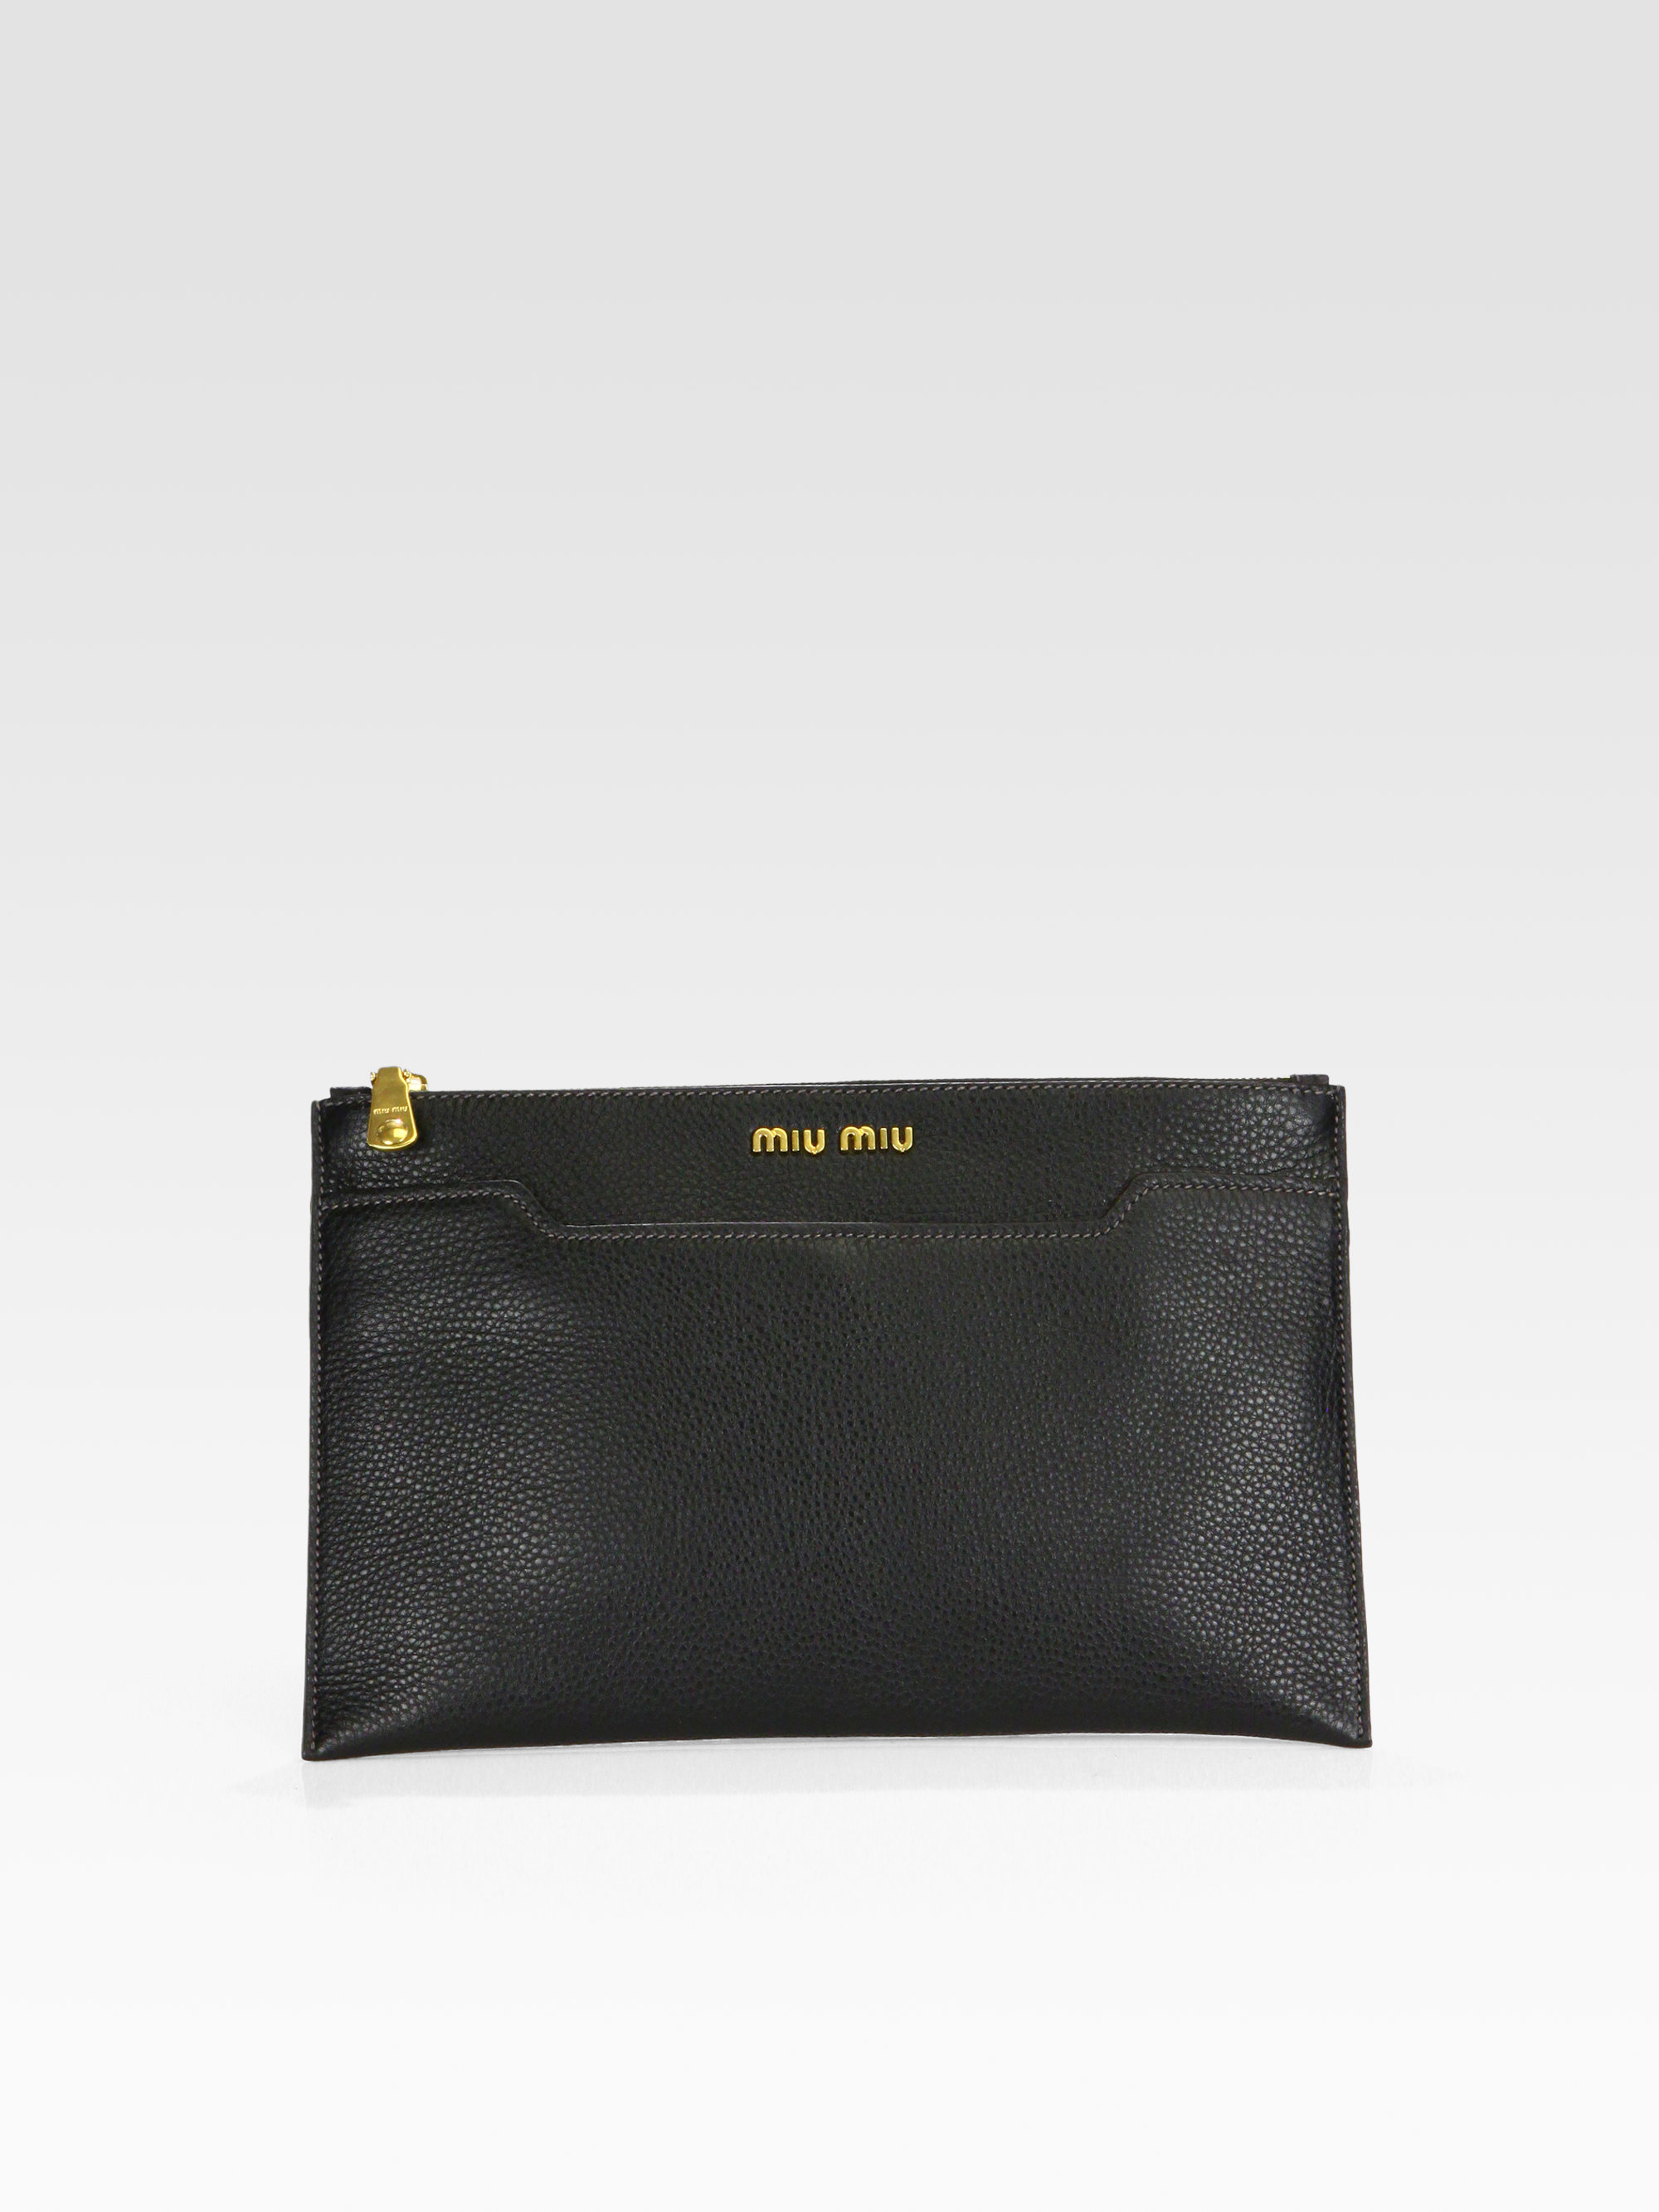 Miu Miu Envelope Clutch